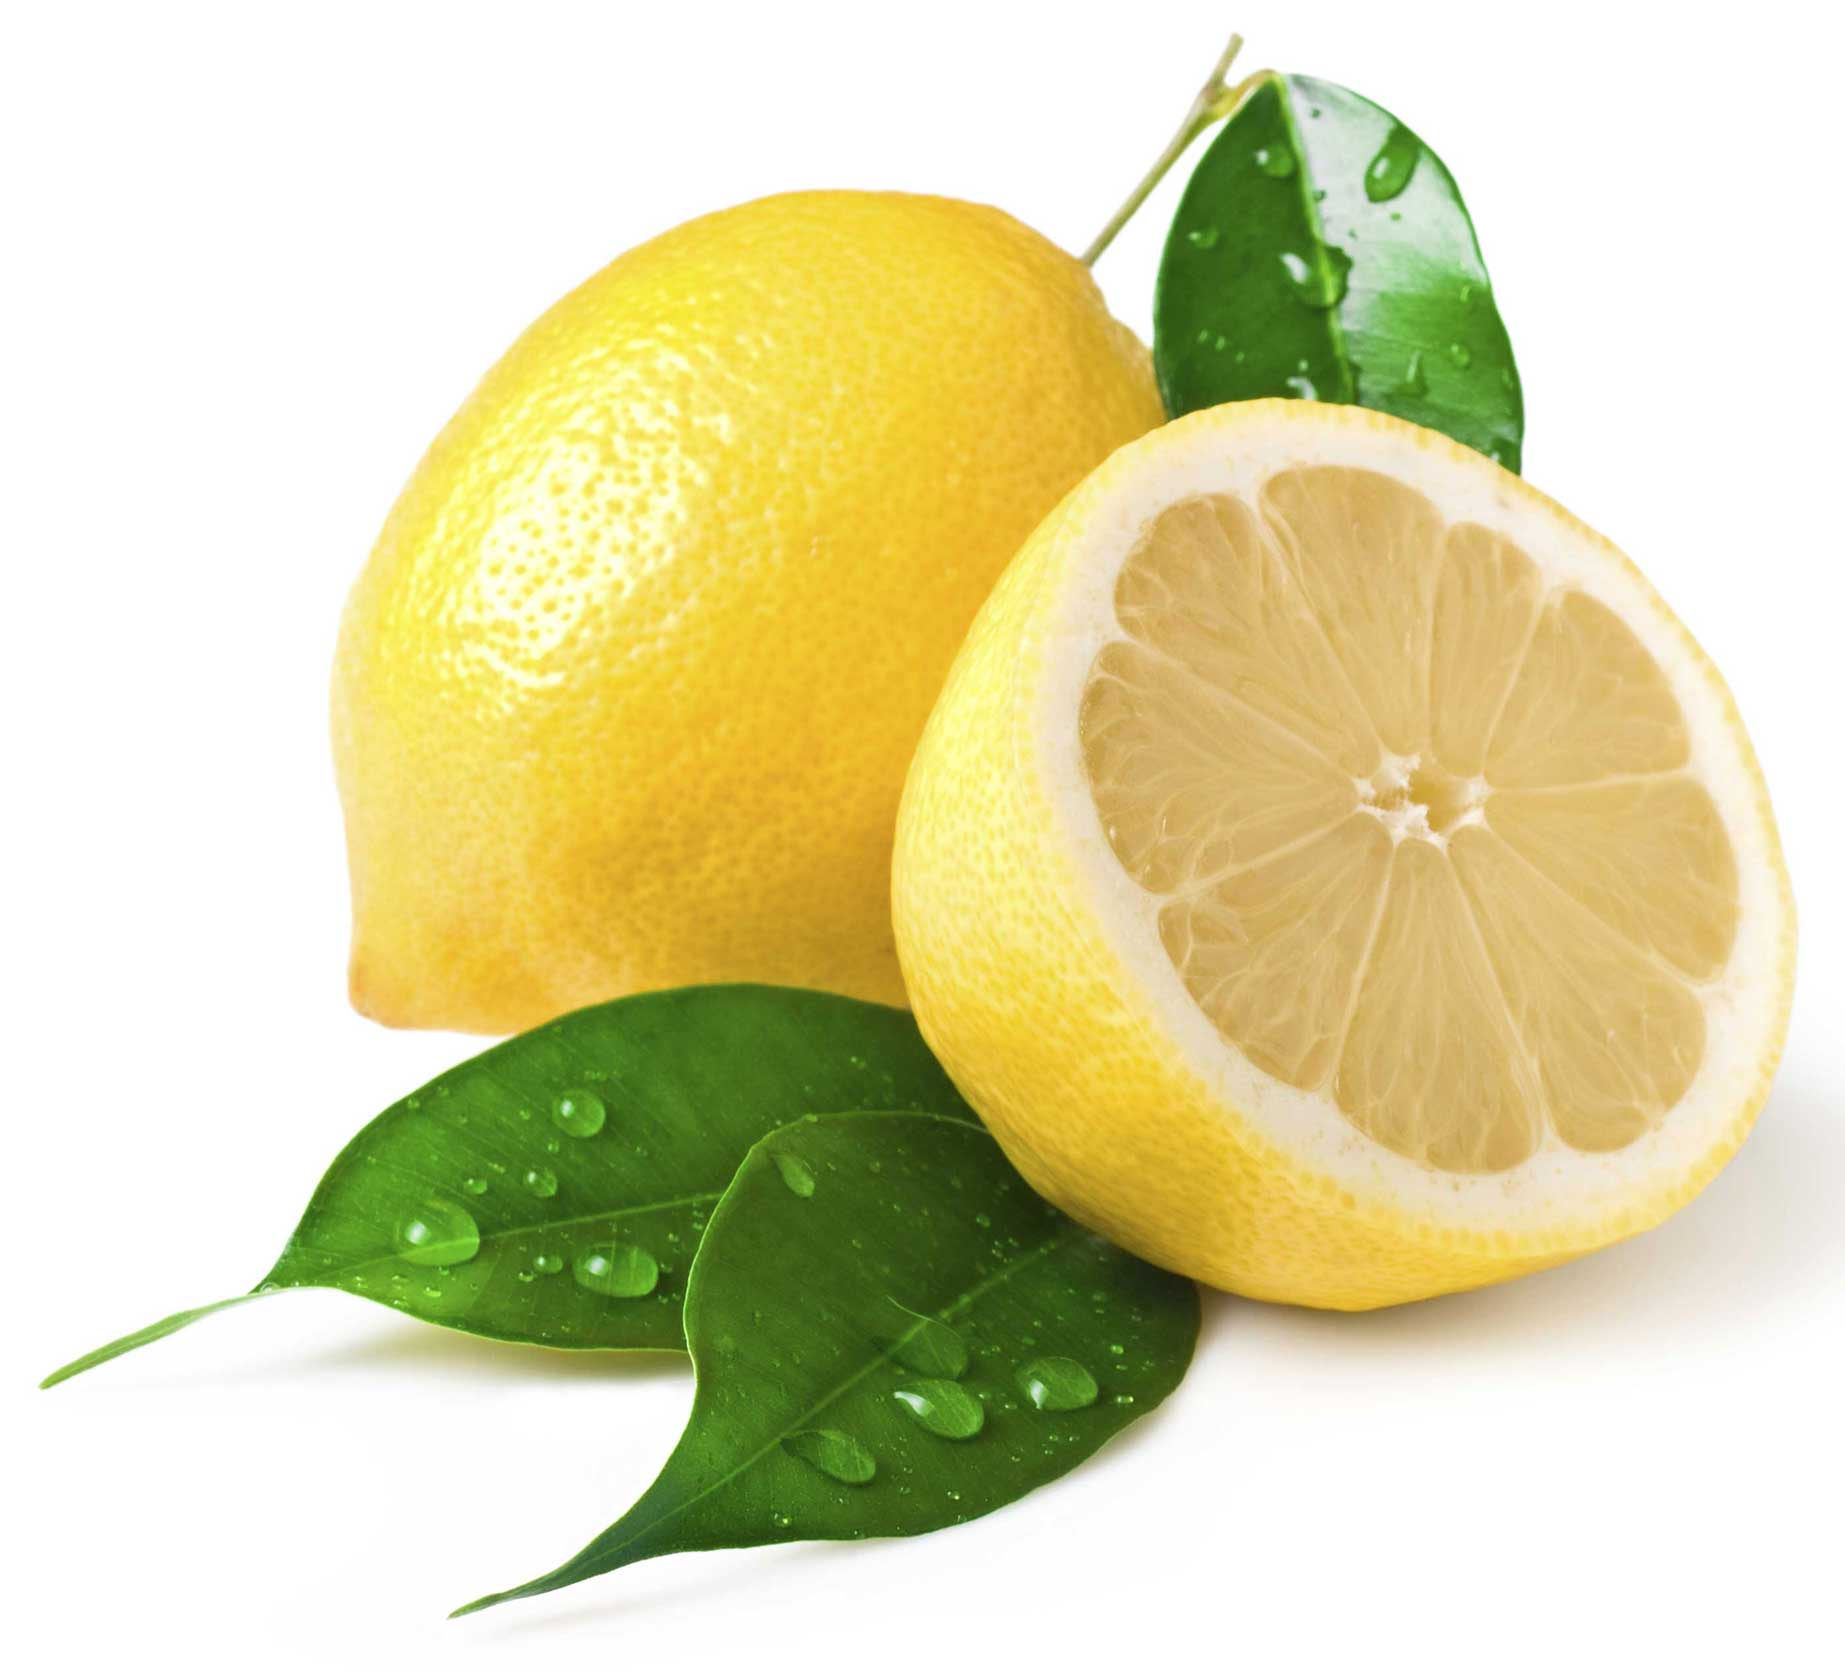 Yellow Lemon in Section 356.6 Kb